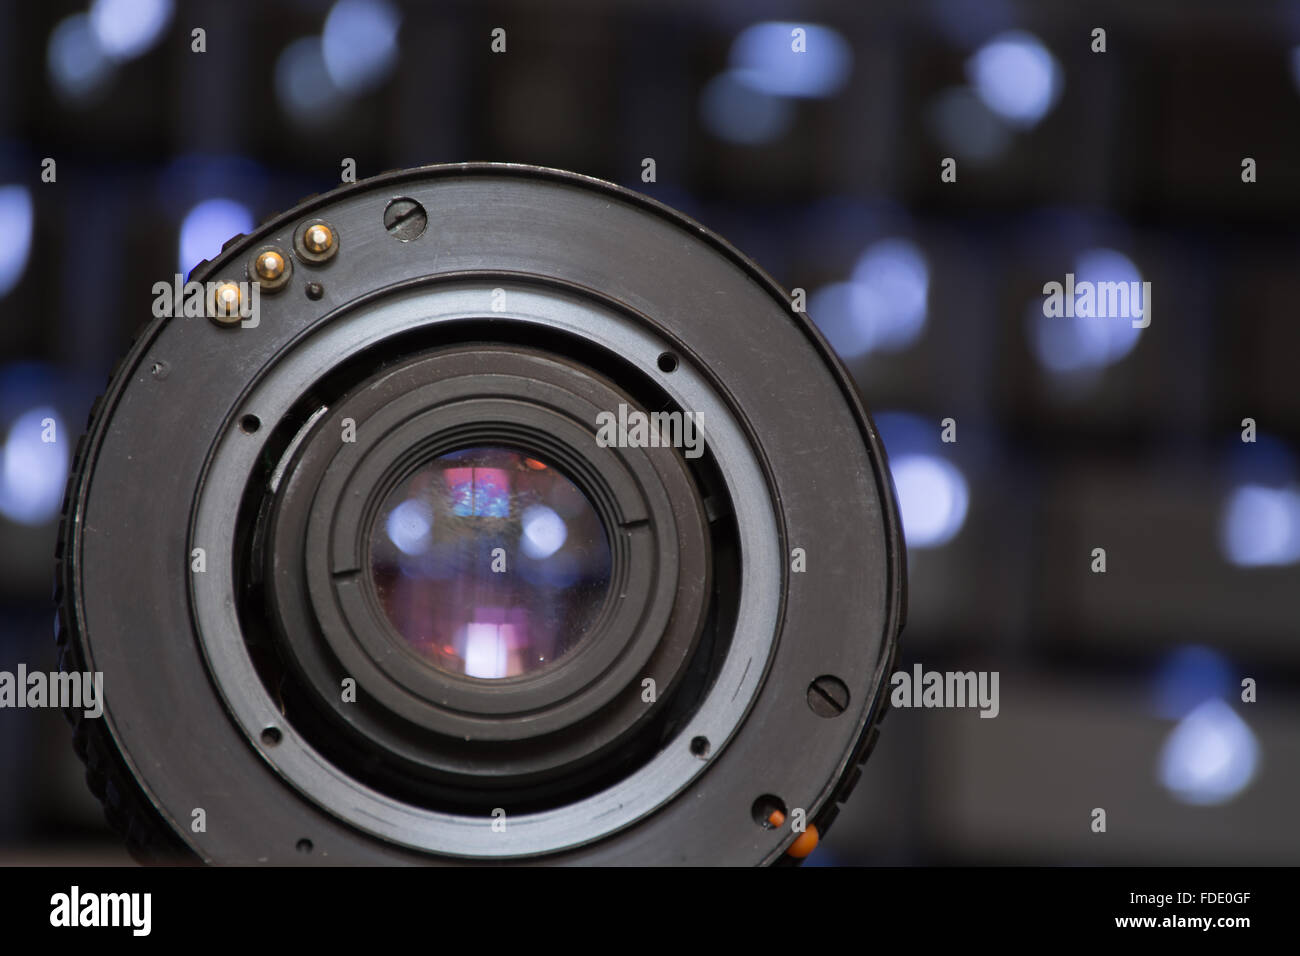 A vintage camera lens, viewed from the side of the mount. - Stock Image